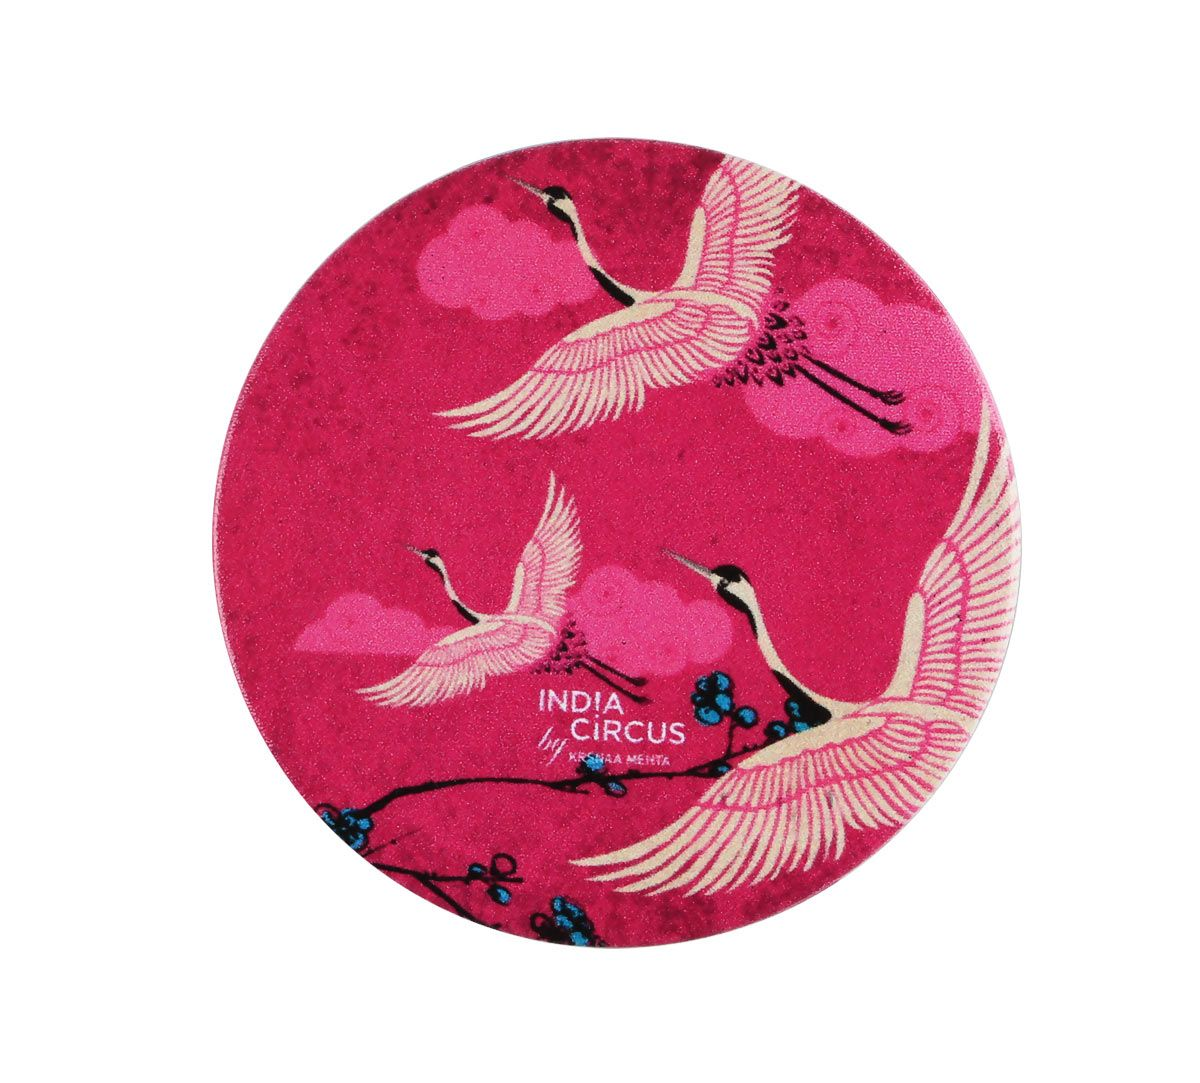 India Circus Legend of the Cranes Popsocket